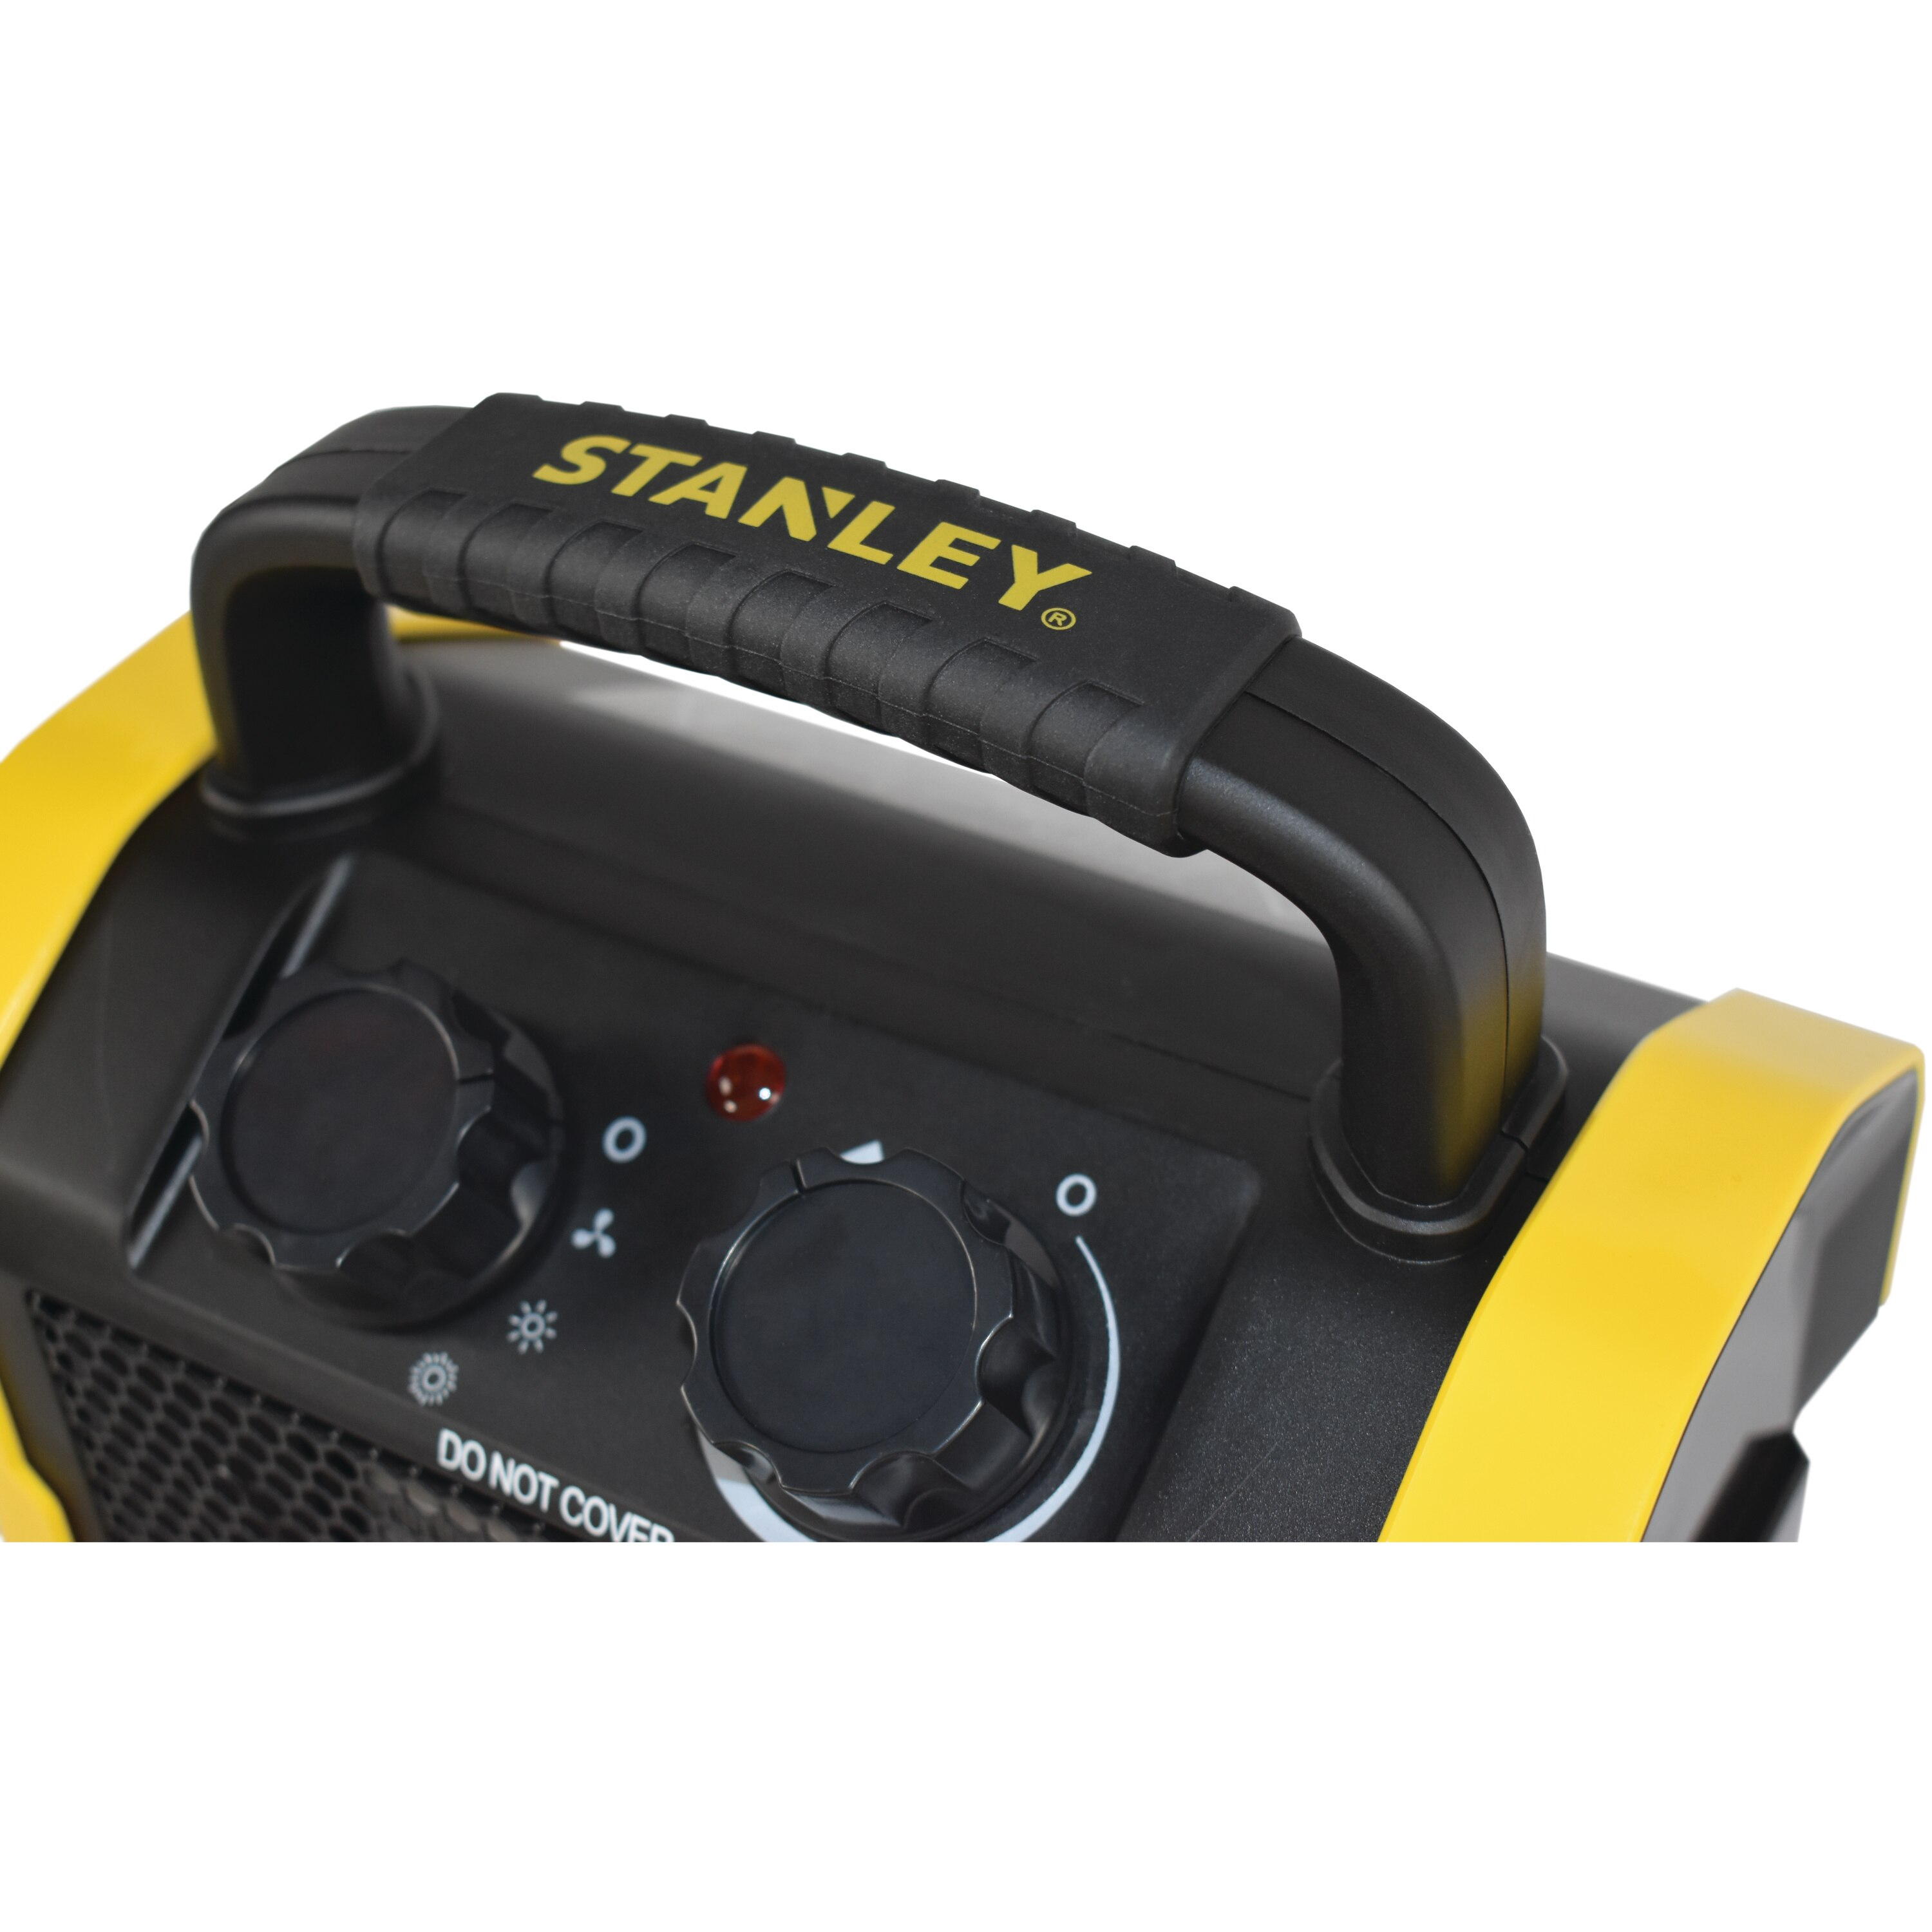 Stanley Tools - HeavyDuty Electric Heater 1500 W - ST-222A-120